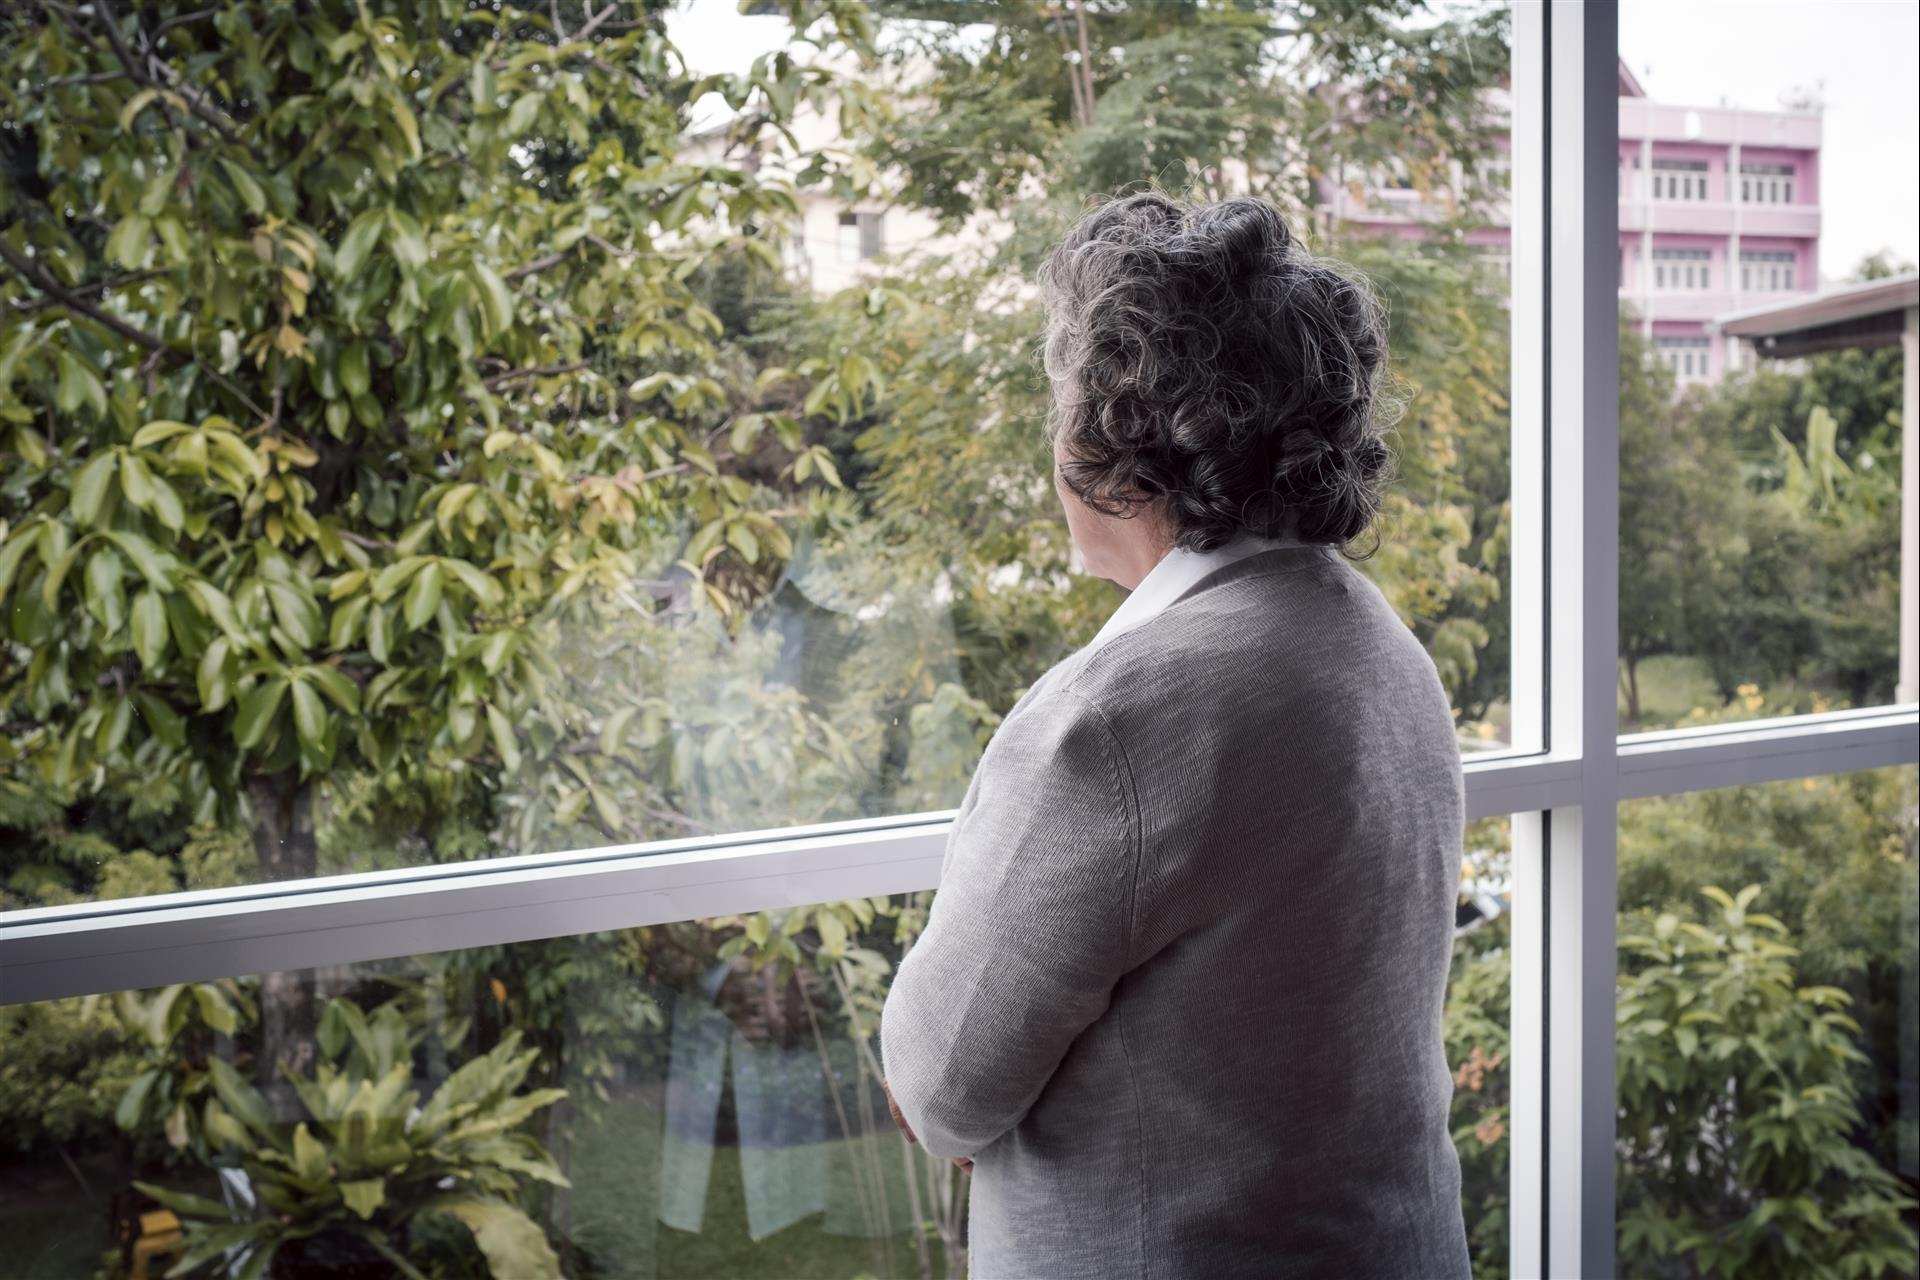 BIBLE VERSES SENIORS CAN TURN TO WHEN MAKING BIG LIFE DECISIONS